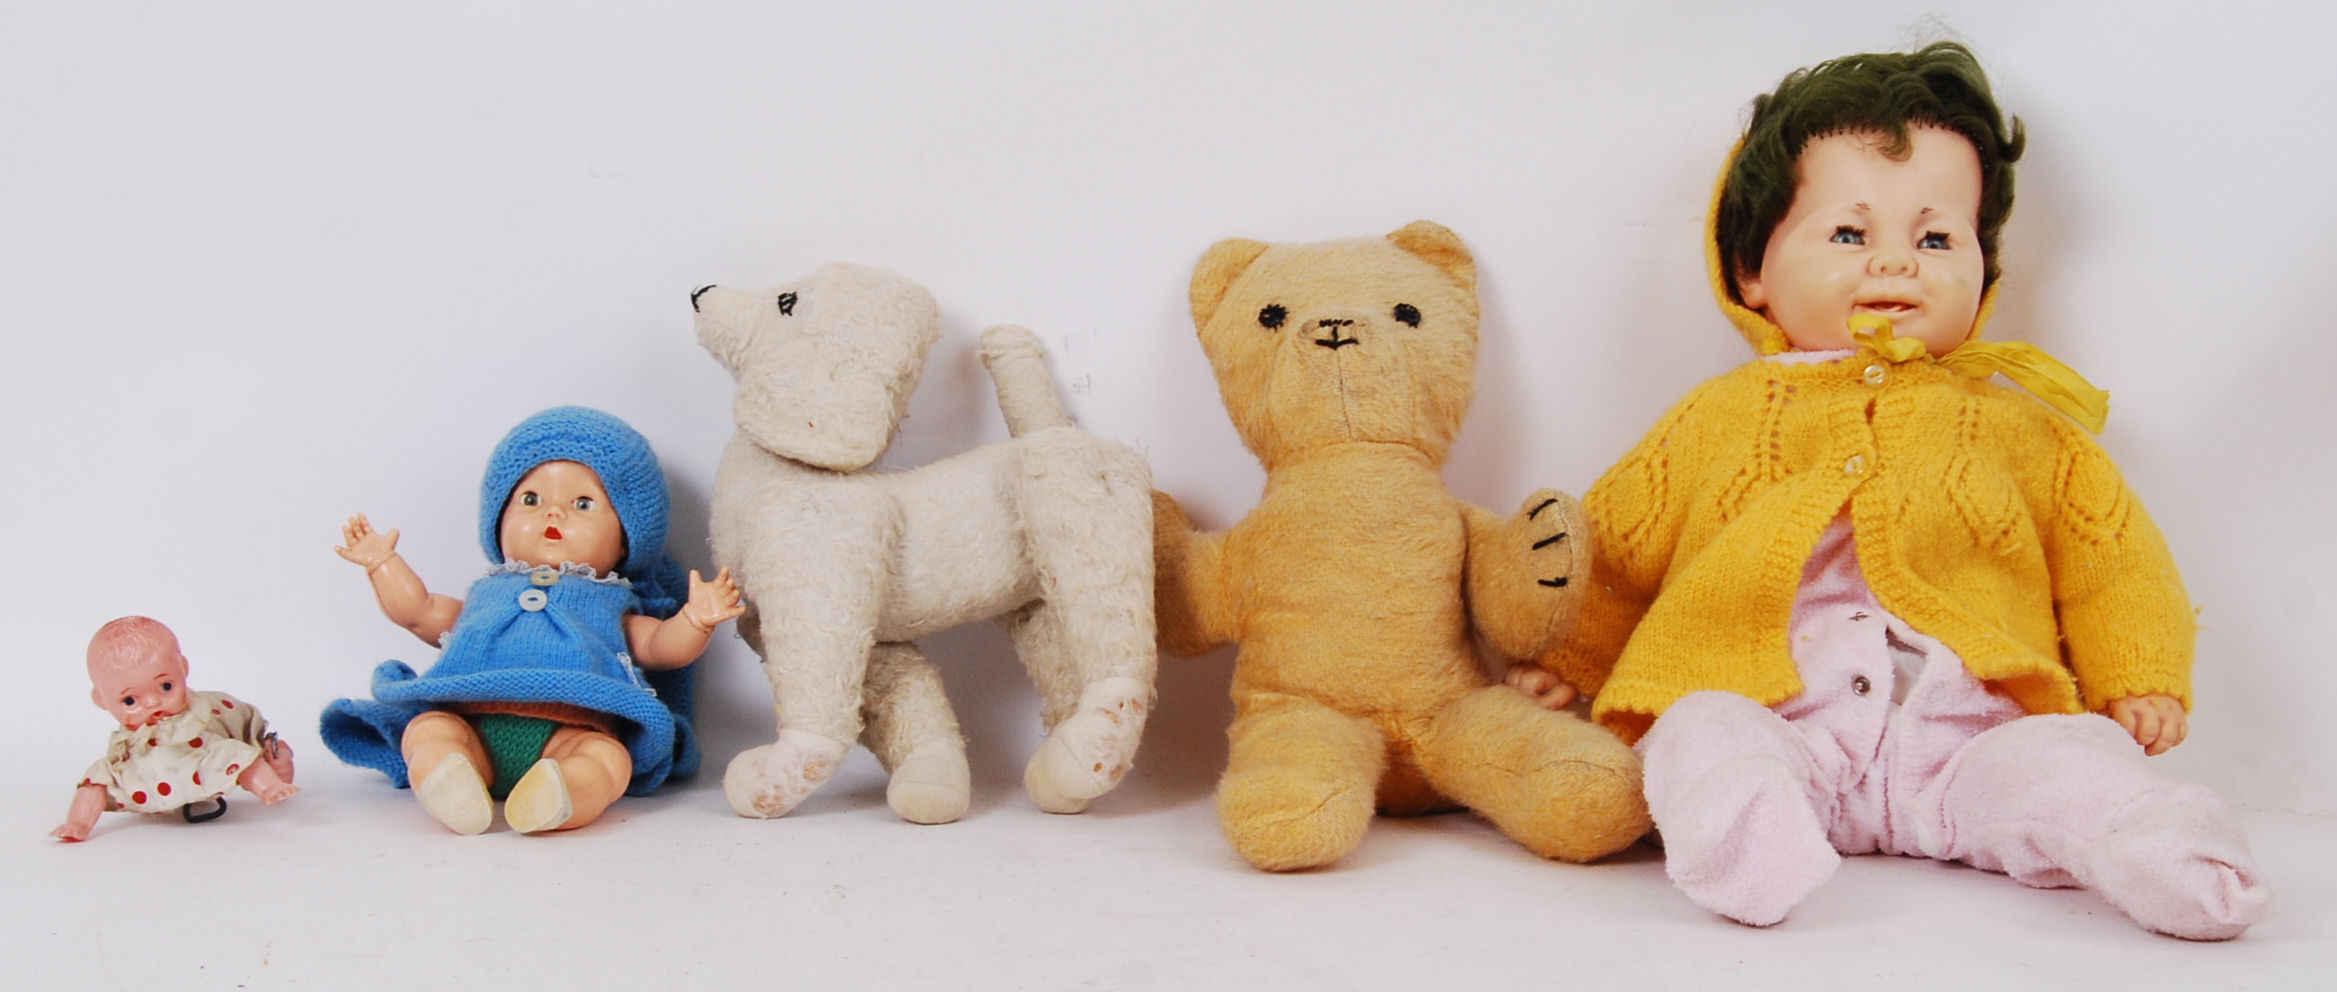 Lot 56 - VINTAGE DOLLS & TEDDY BEARS